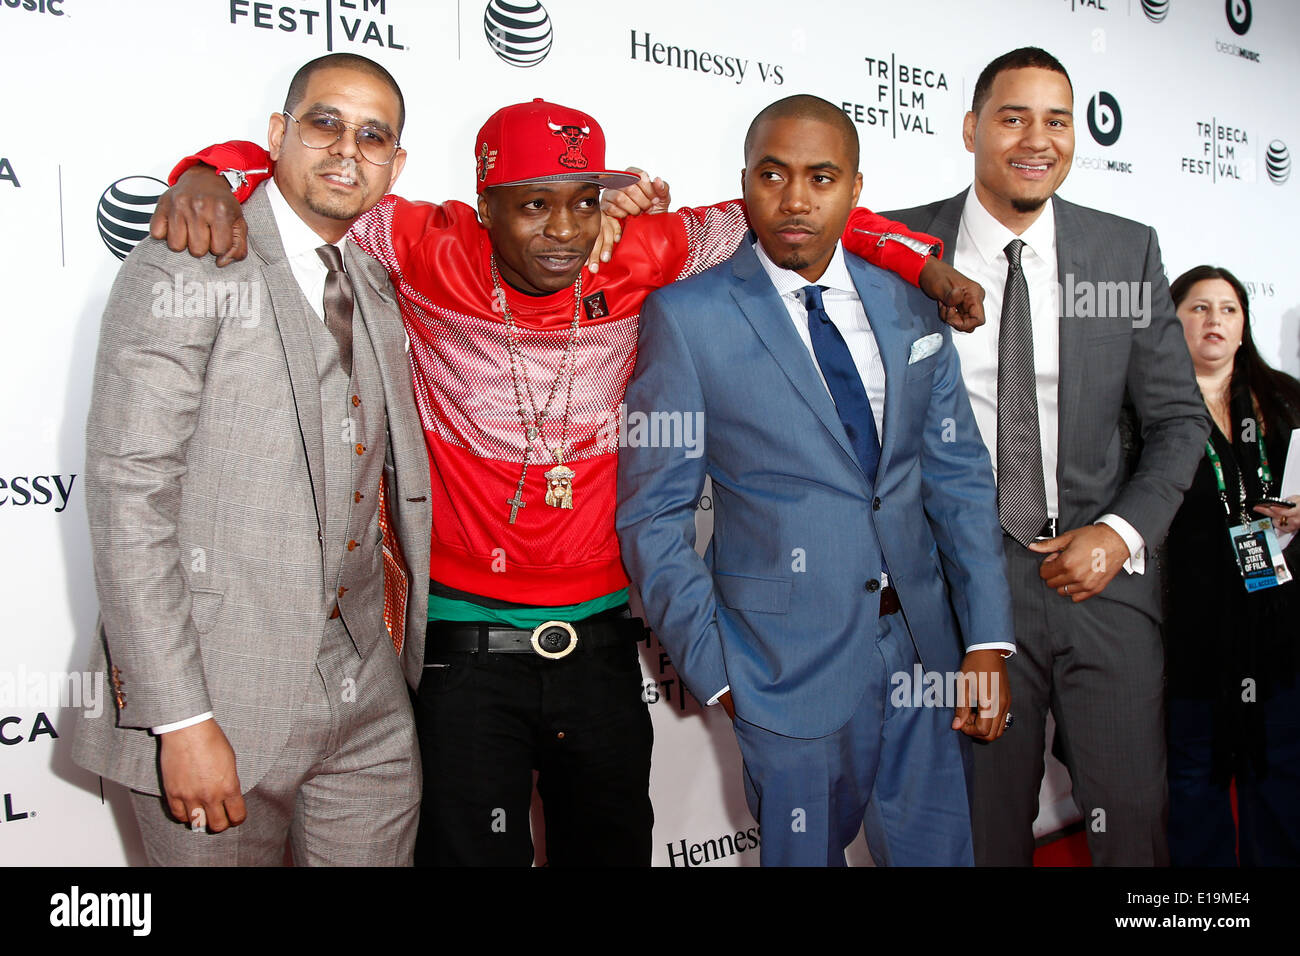 (L-R) One9, Jungle, Nas and Erik Parker attend the world premiere of 'Time Is Illmatic' at the 2014 TriBeCa Film Festival. - Stock Image